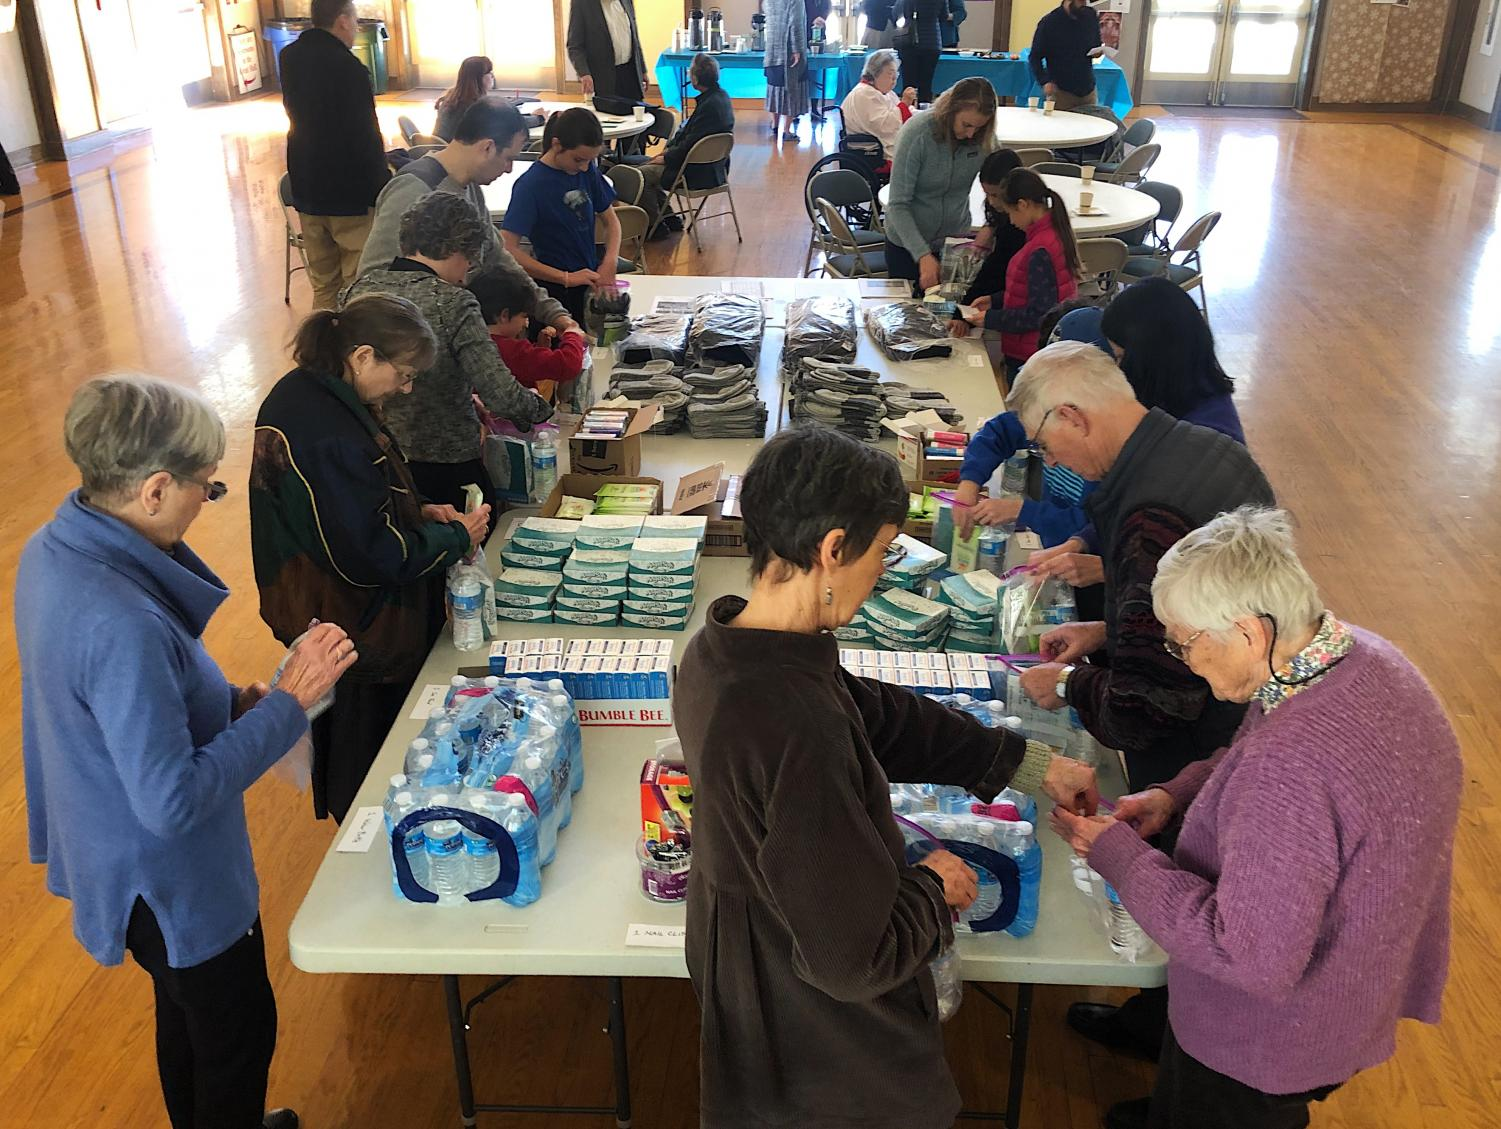 Volunteers work to create homeless care packages throughout the morning.